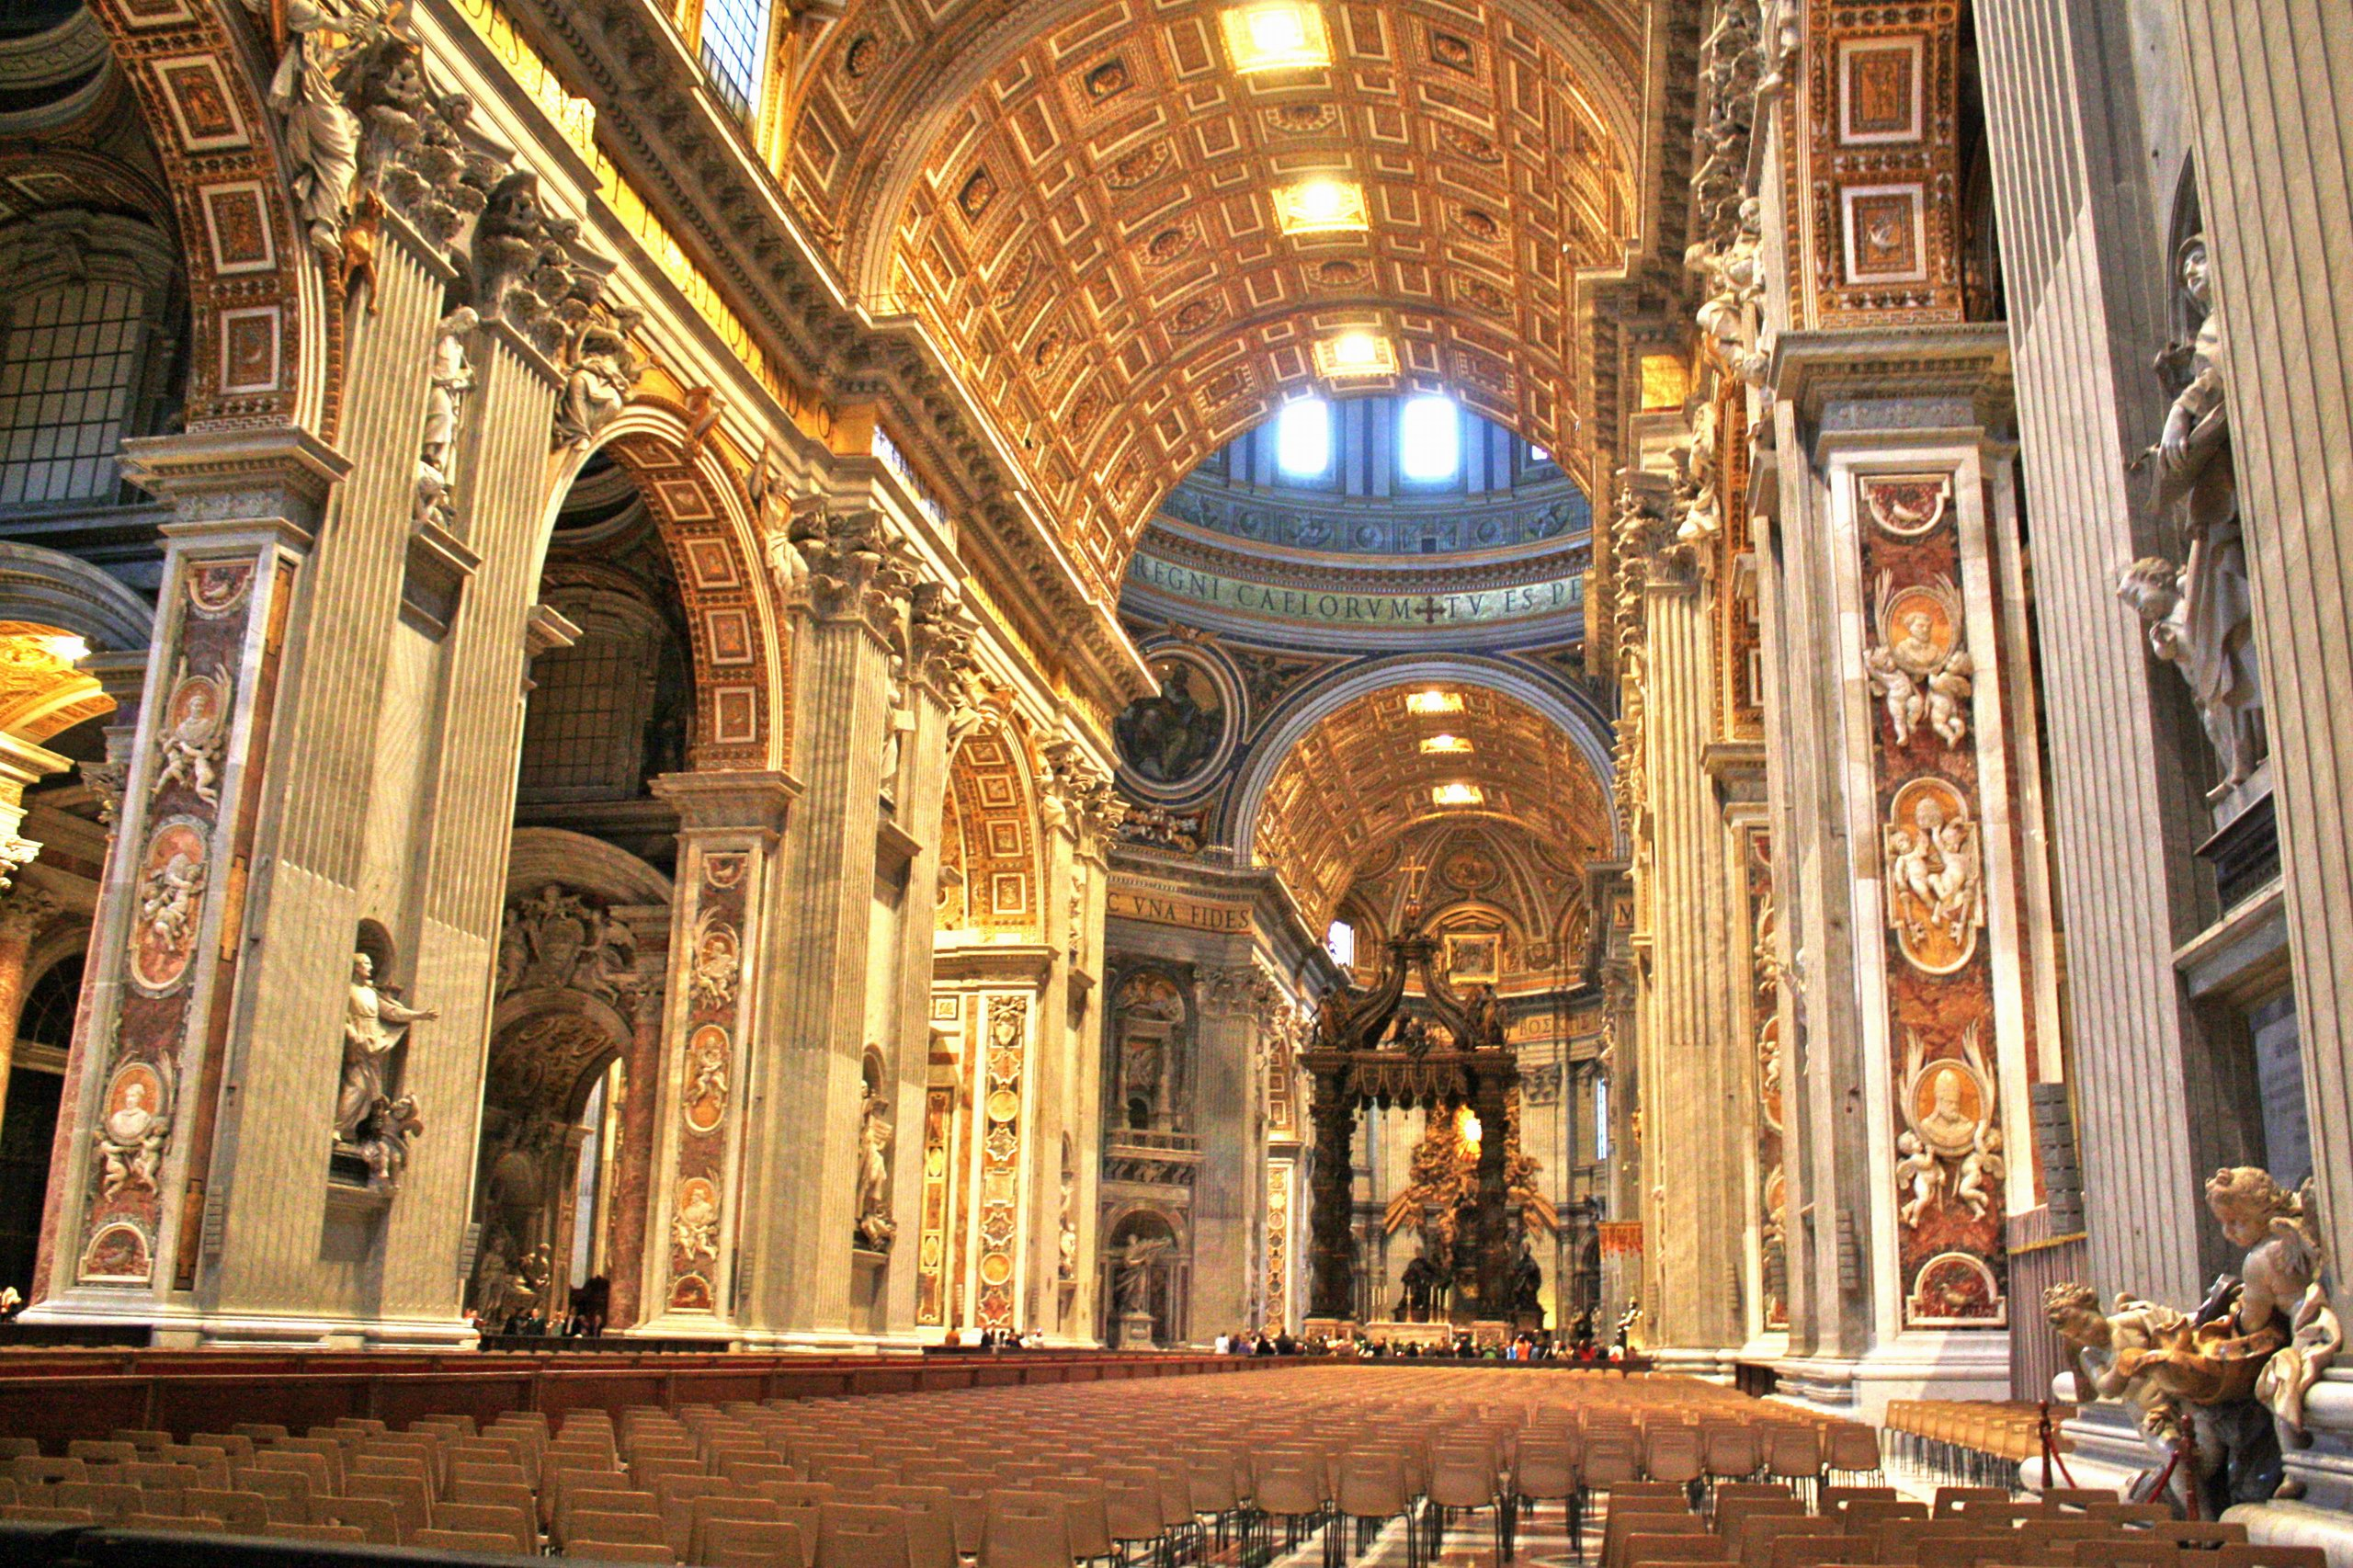 Saint-Peters-Basilica-interior